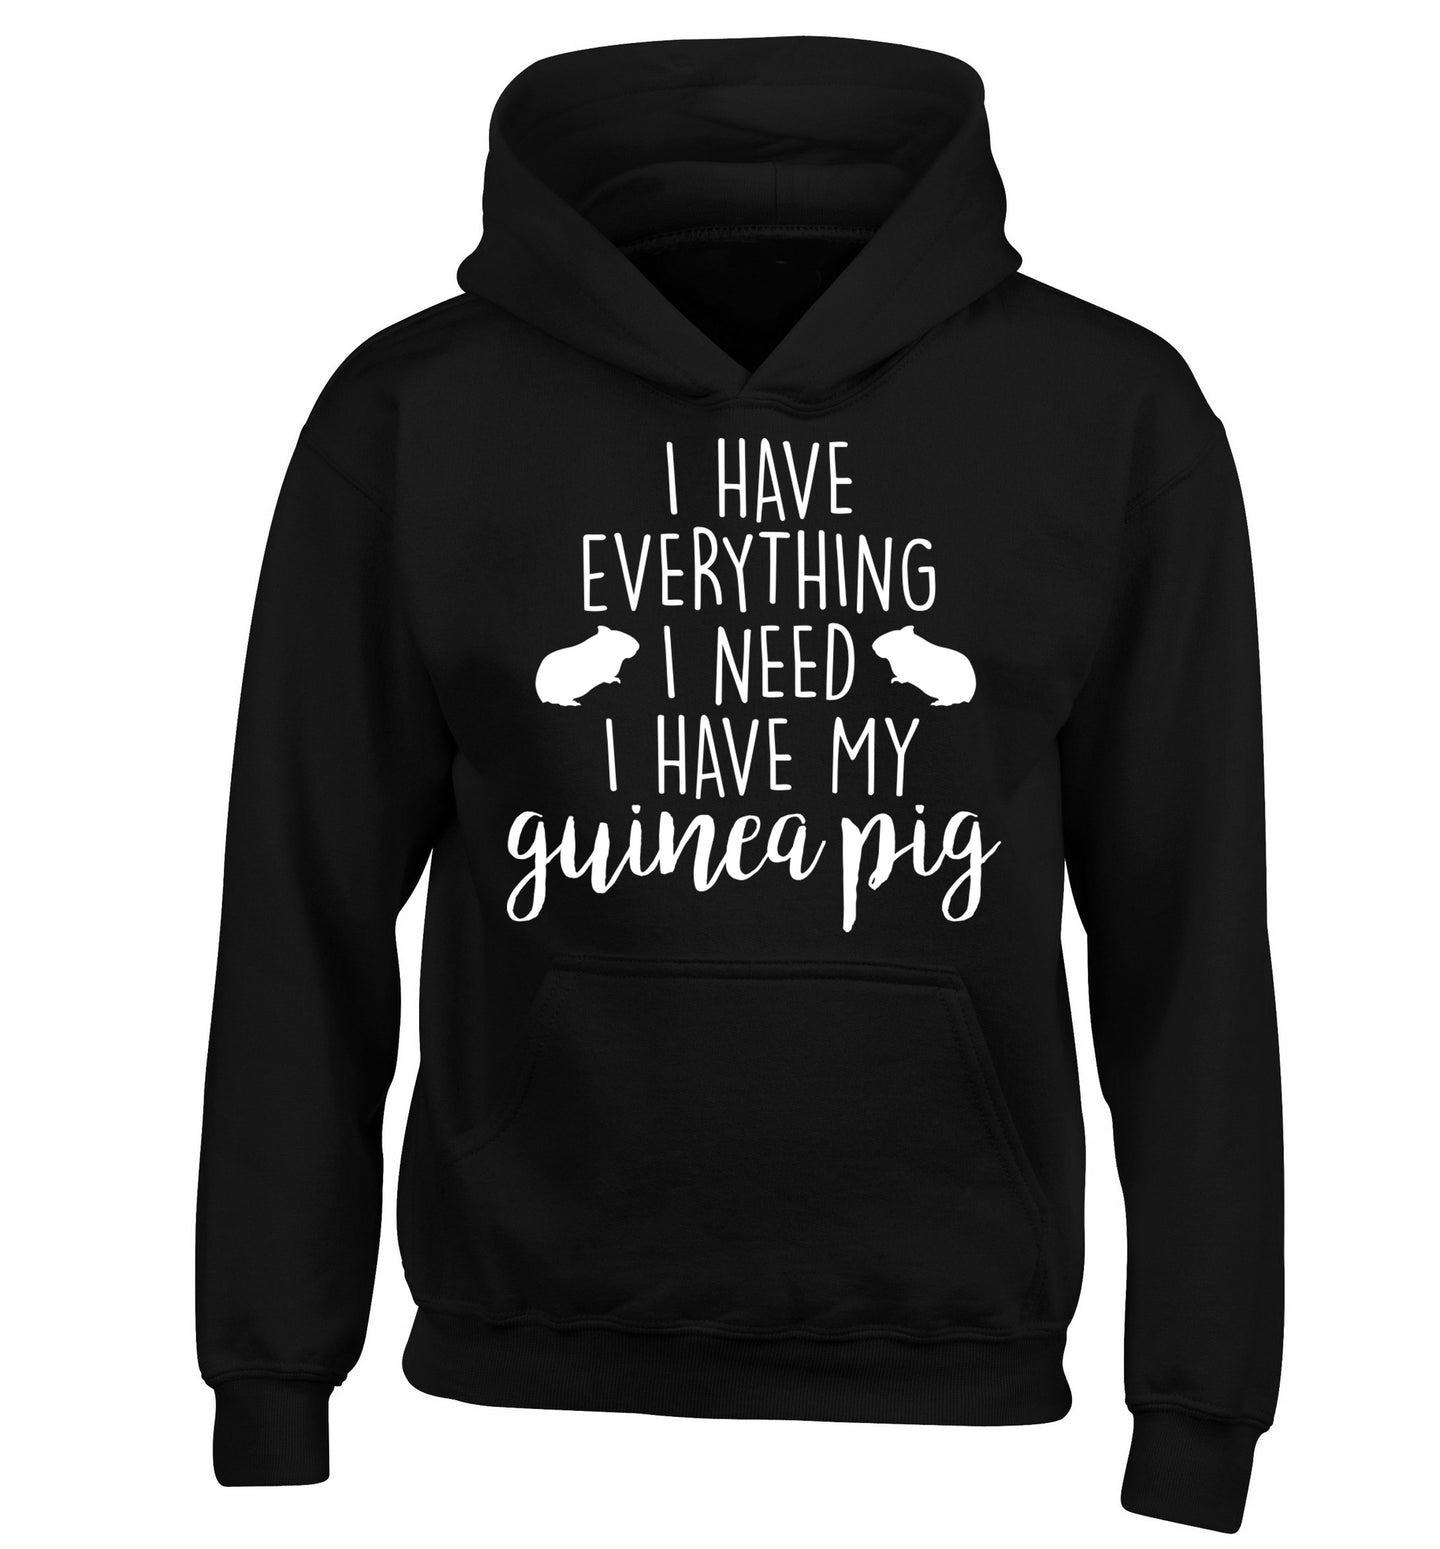 I have everything I need, I have my guinea pig children's black hoodie 12-14 Years